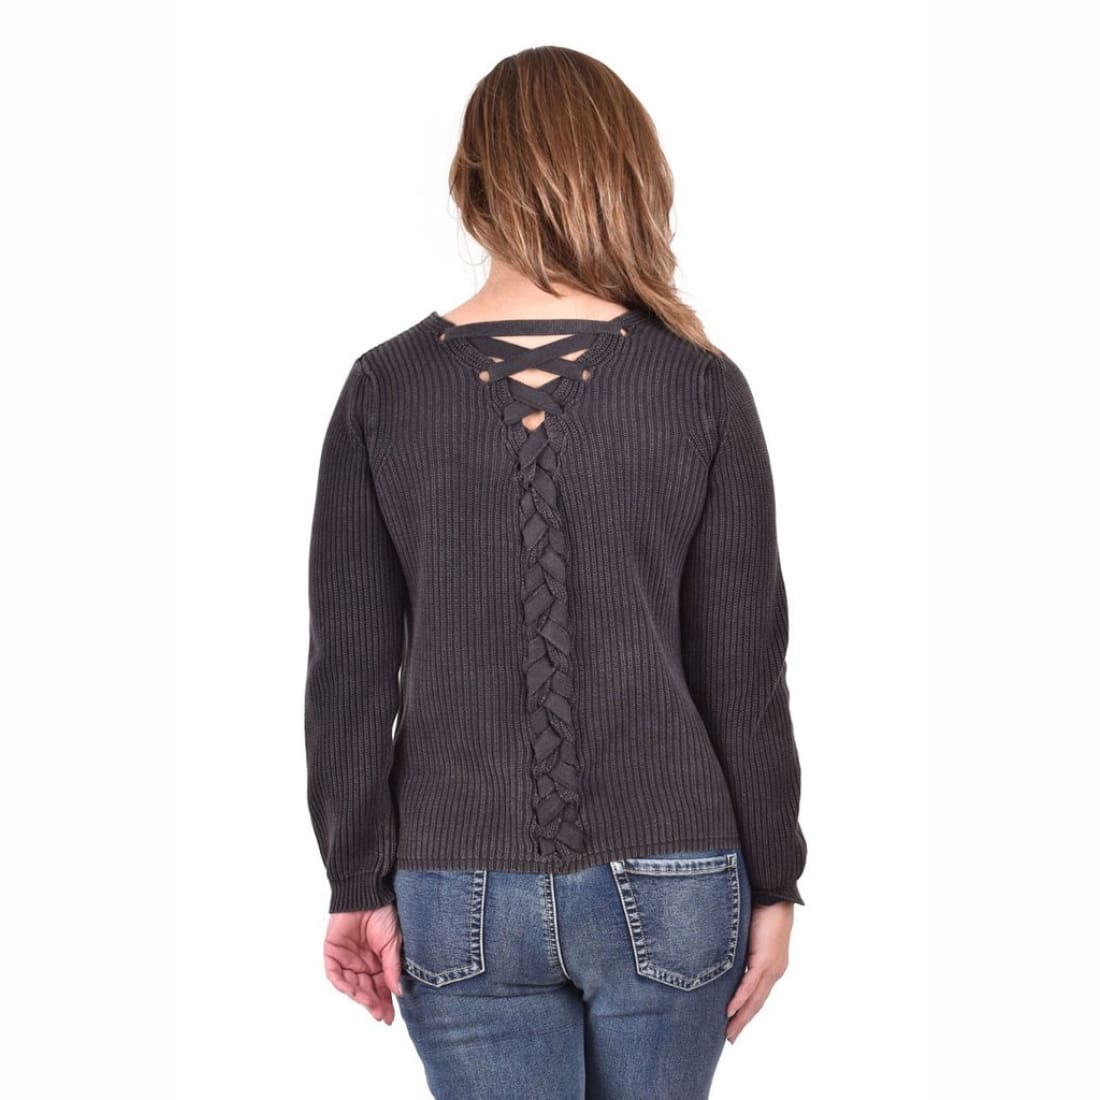 Ethyl Womens The Miah - Camellia Lace Back Sweater Sweaters